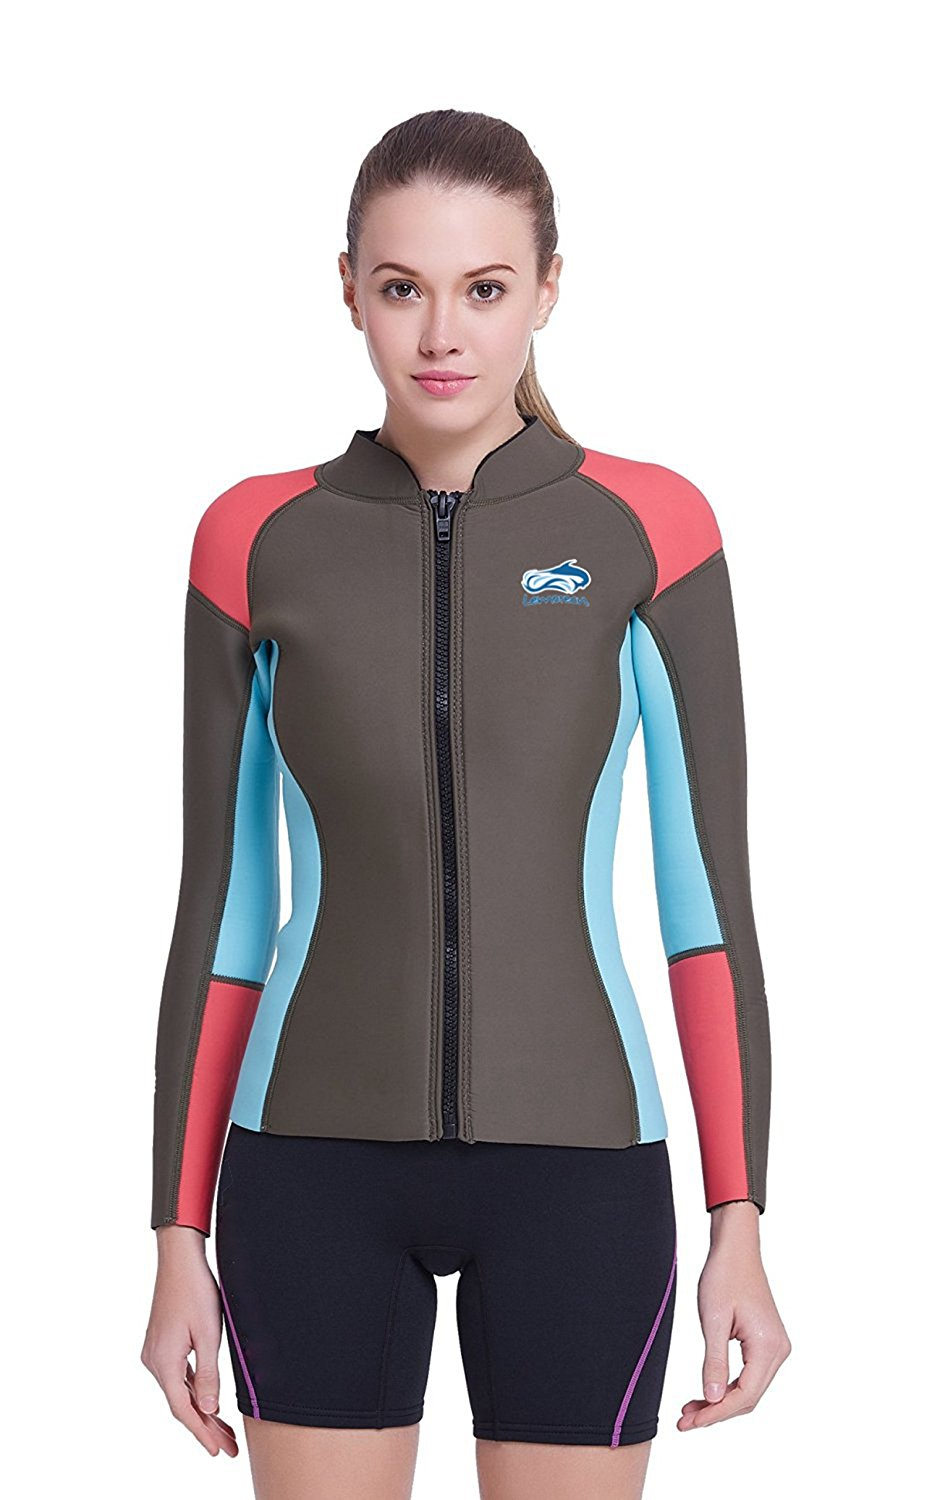 a19baeb779 Get Quotations · Lemorecn Women s 1.5mm Wetsuits Jacket Long Sleeve  Neoprene Wetsuits Top